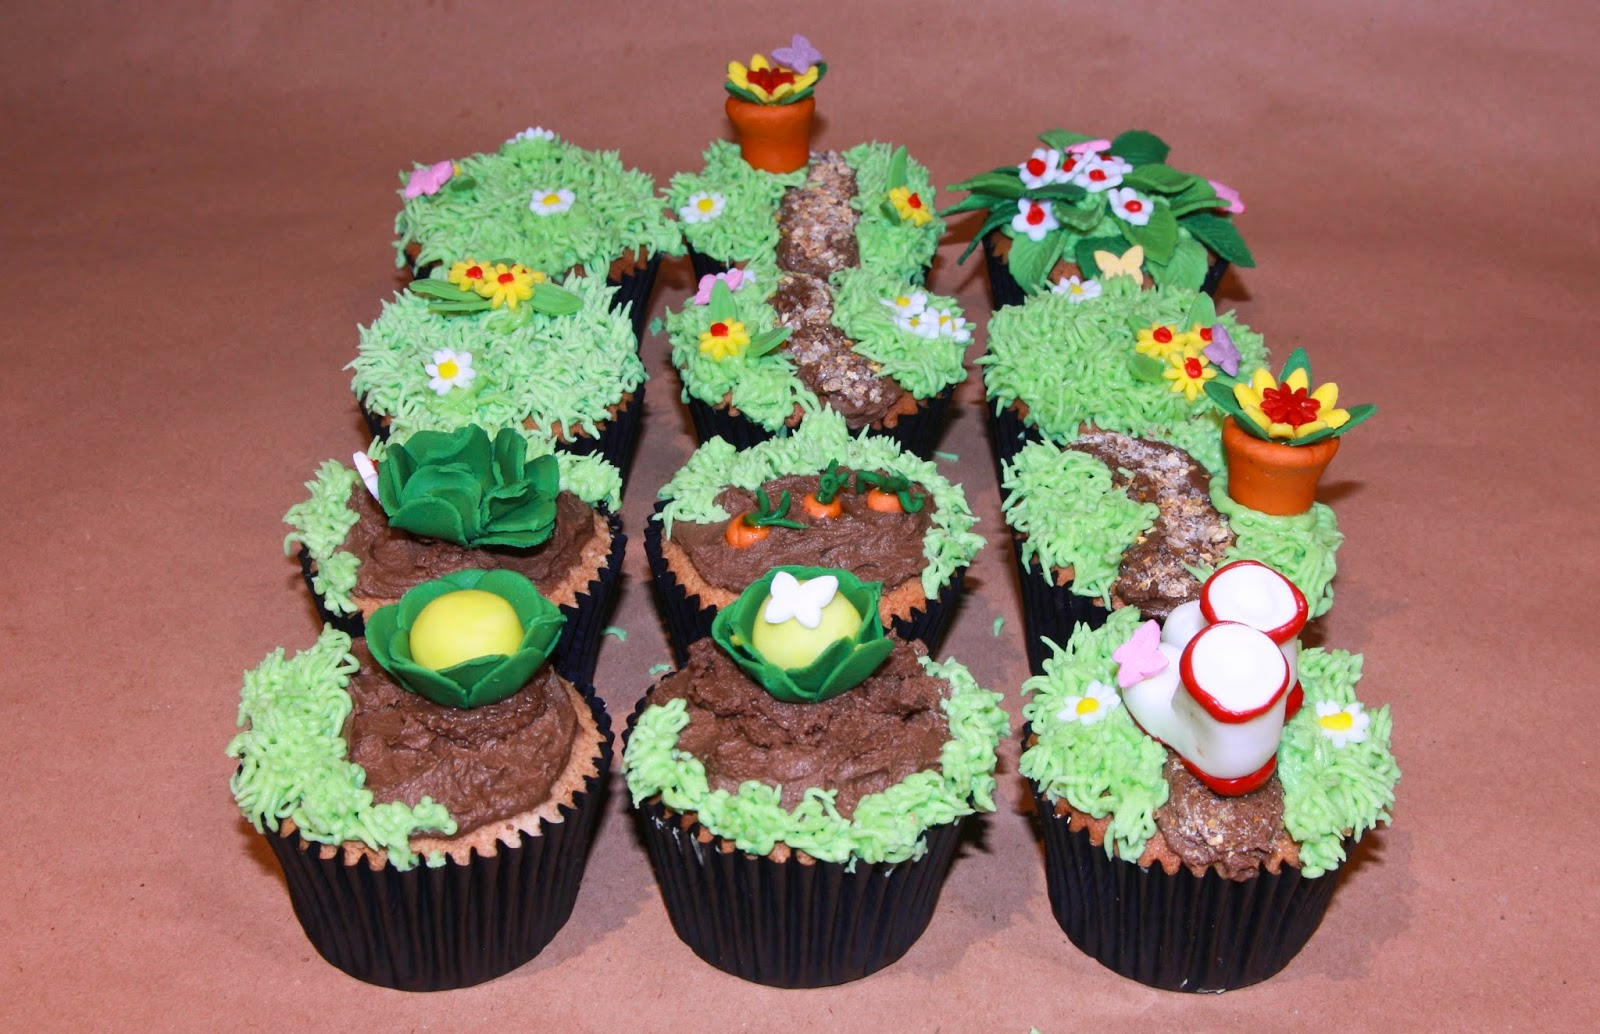 12 Earl Grey cupcakes topped with lemon buttercream and decorated with a garden theme